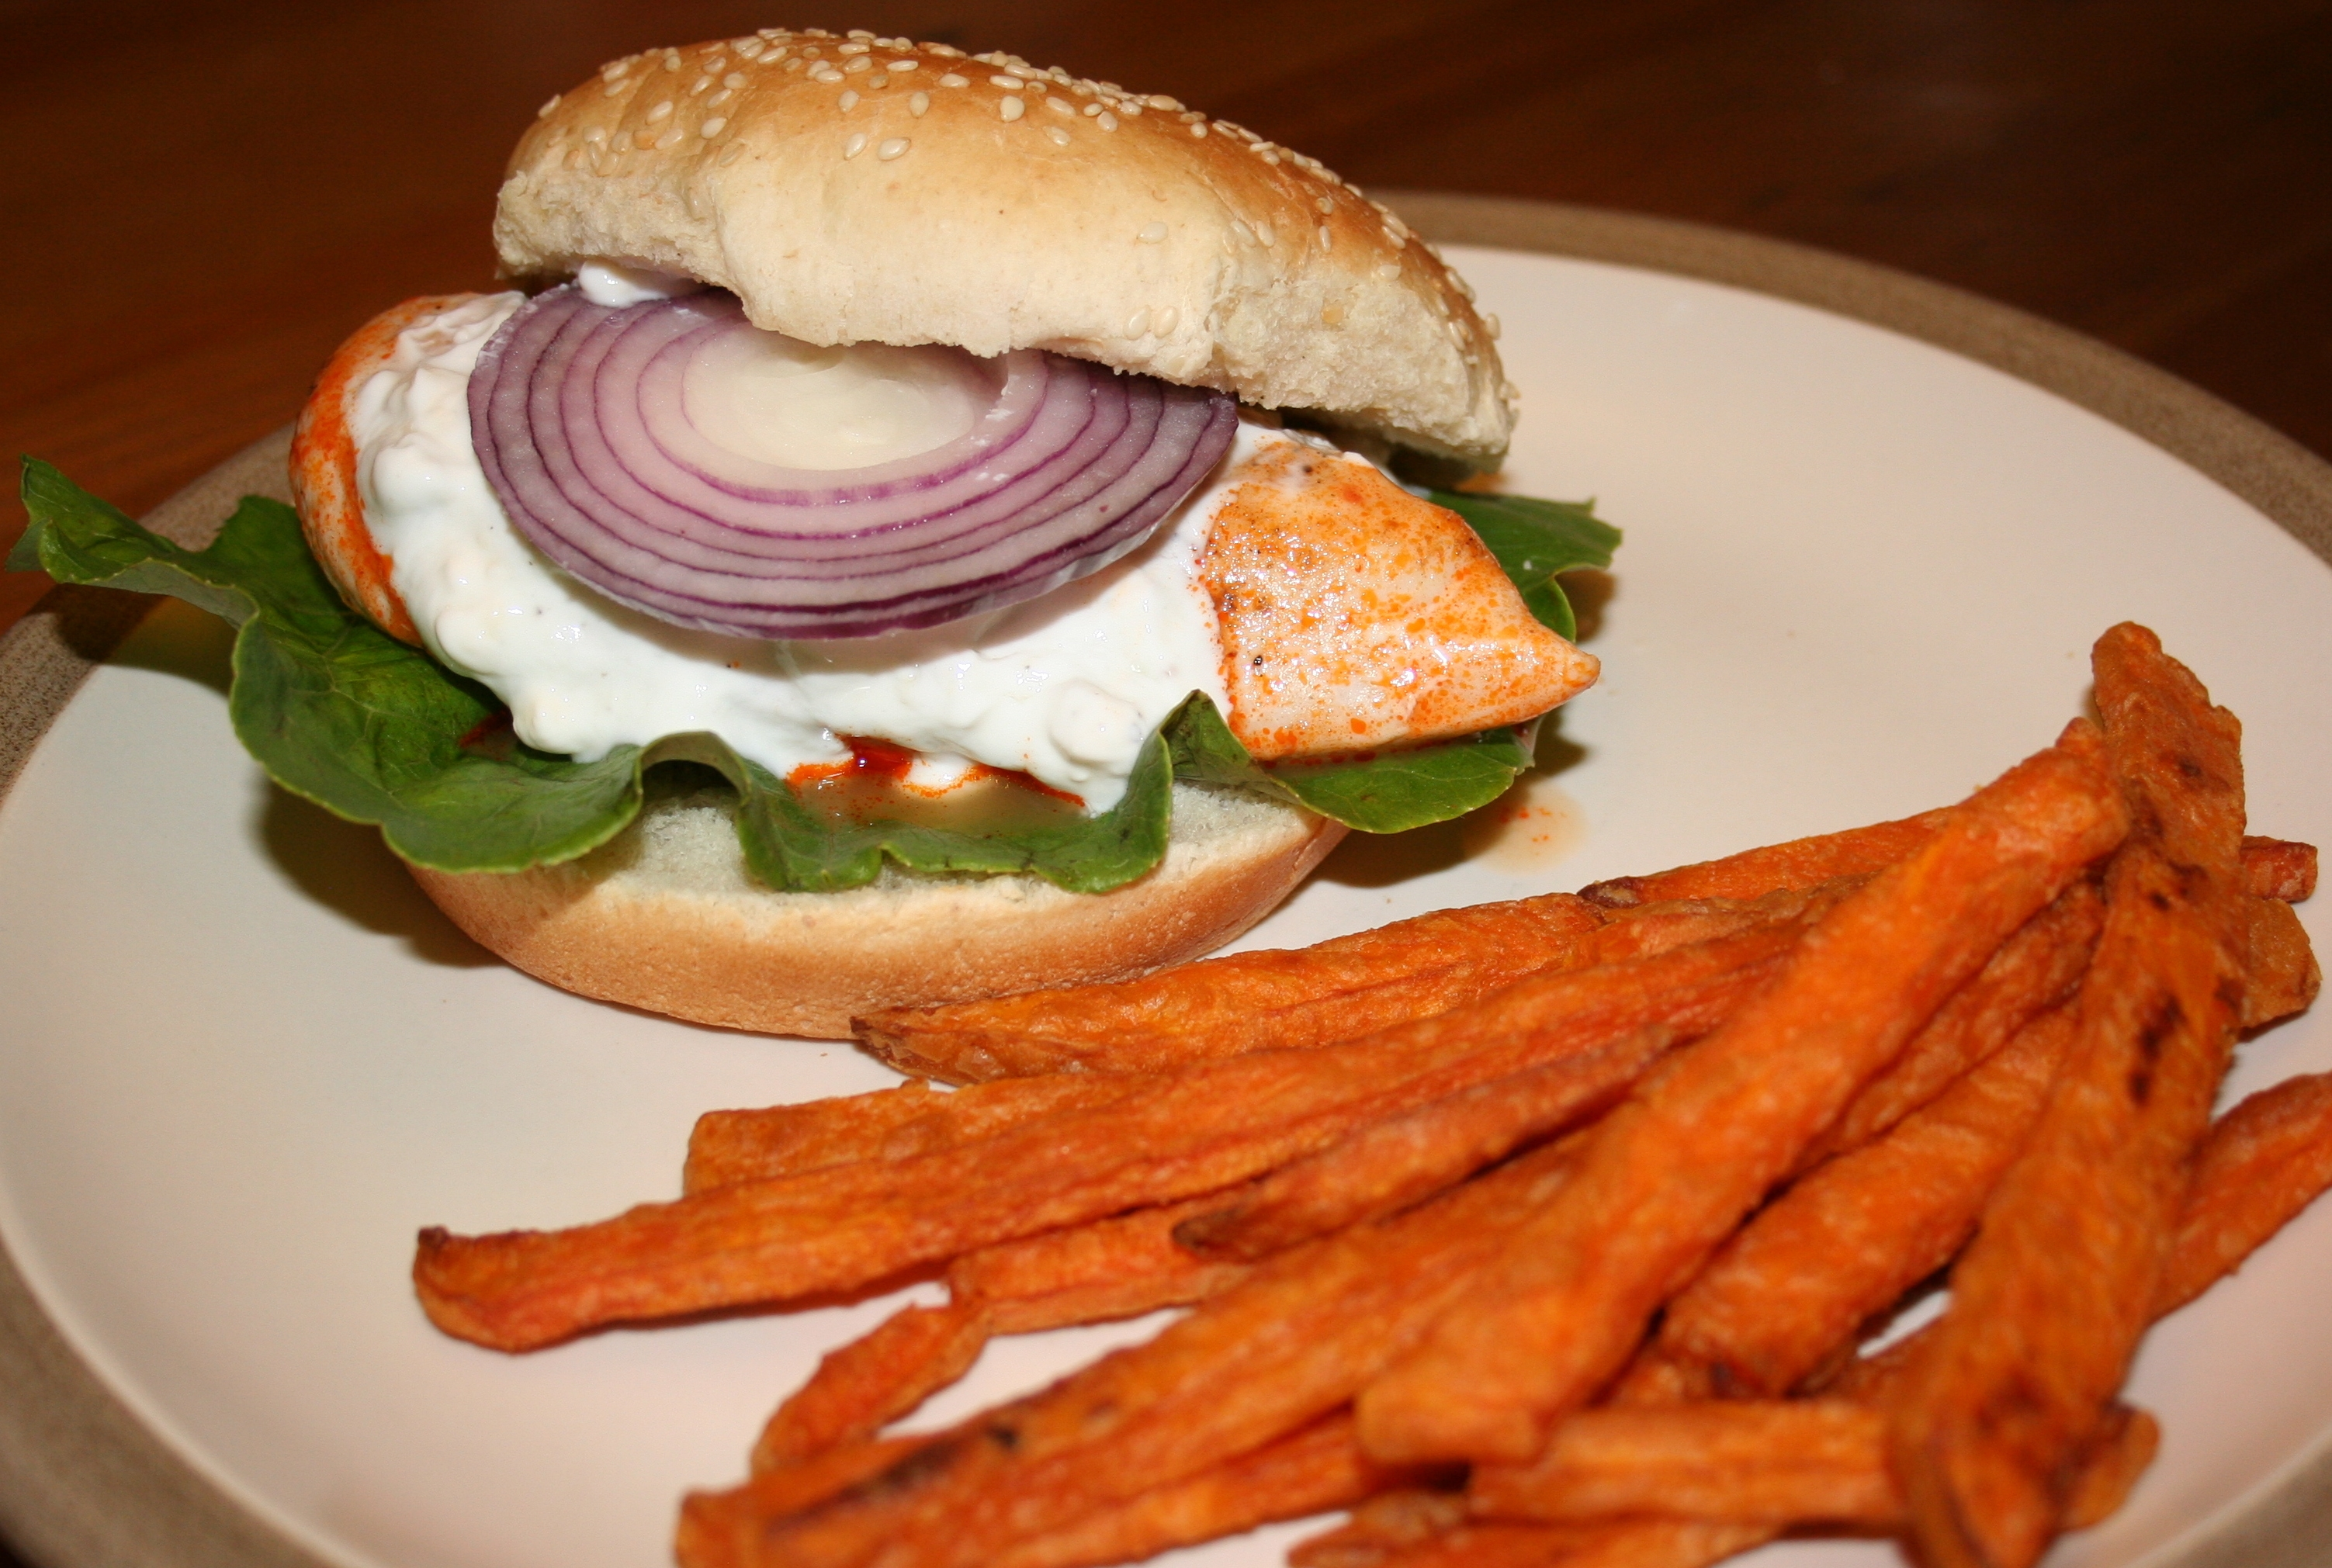 Ripped Recipes - Buffalo Chicken Burger